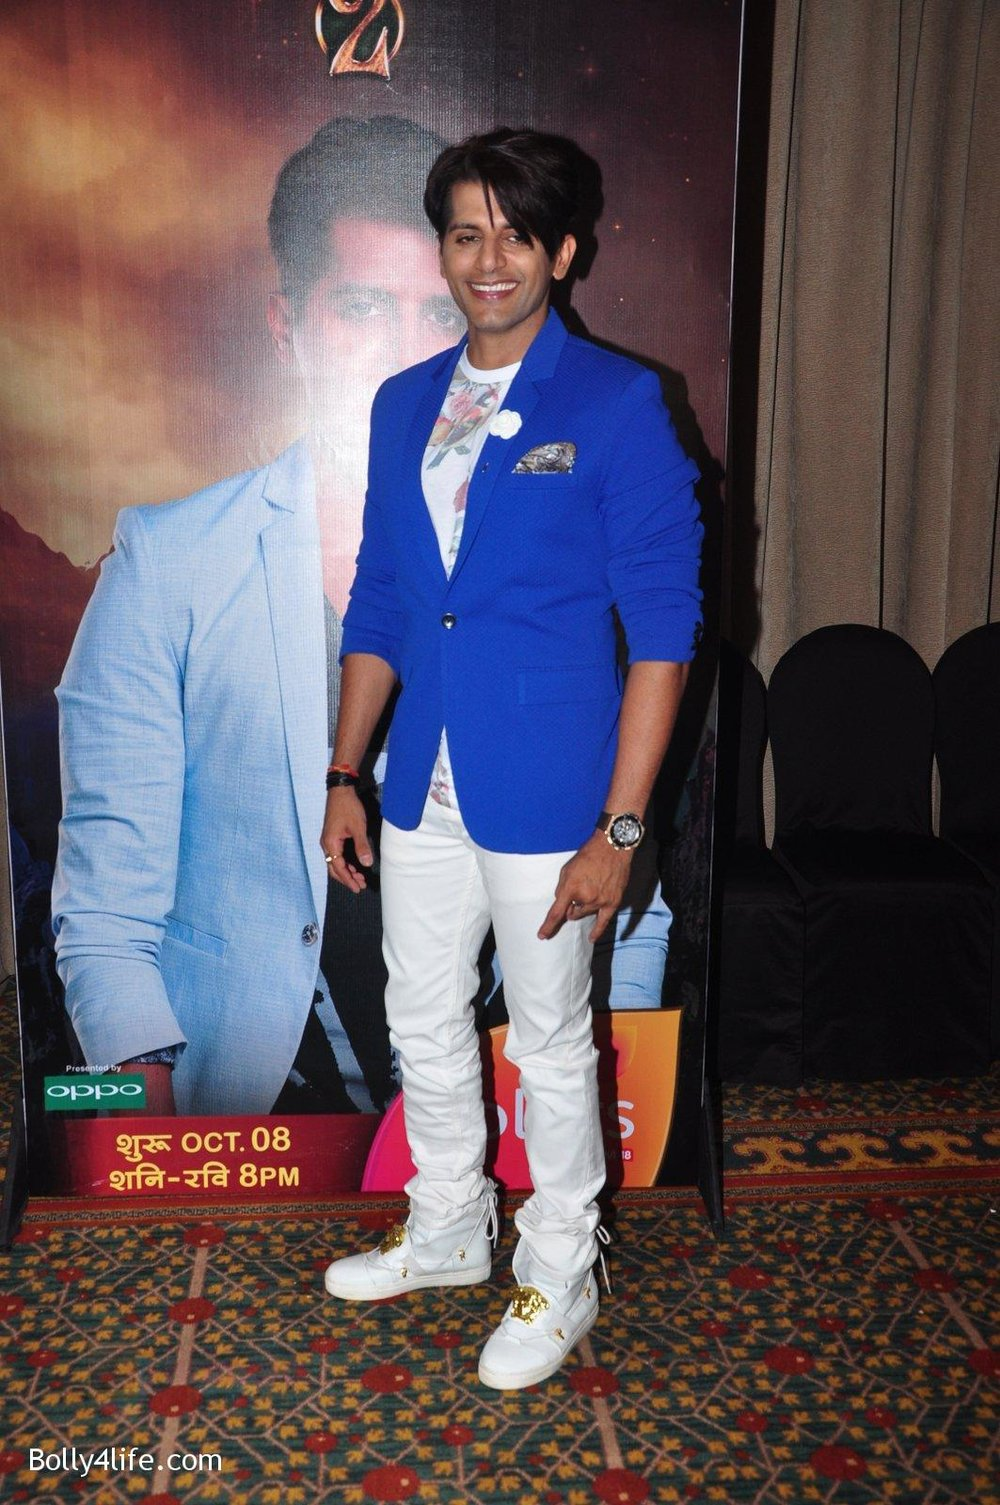 Karanvir-Bohra-at-Naagin-2-launch-in-Mumbai-on-4th-Oct-2016-7.jpg